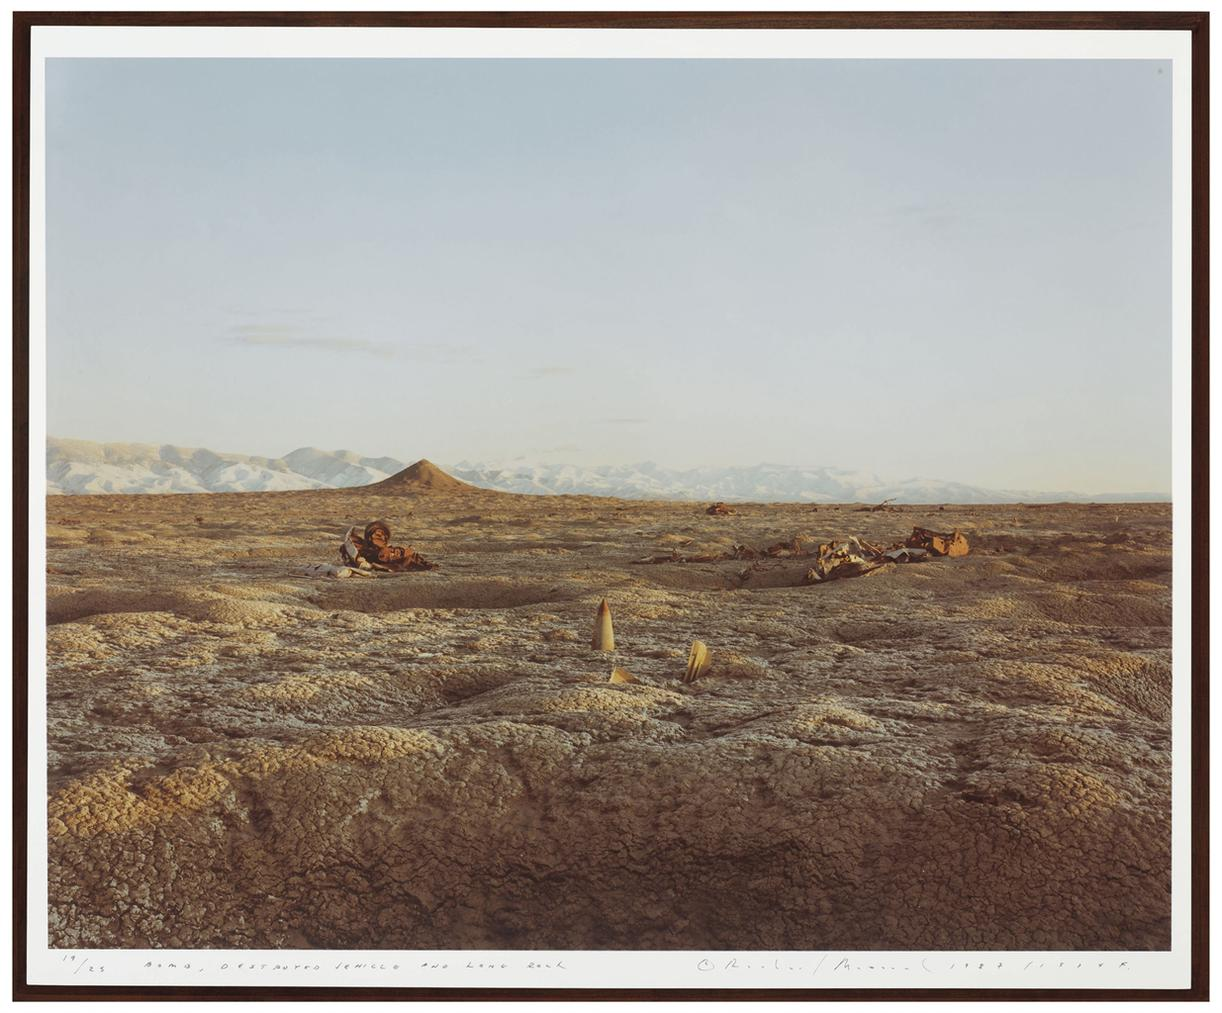 Richard Misrach-Bomb, Destroyed Vehicle And Lone Rock, Bravo 20 Bombing Range, Nevada-1987